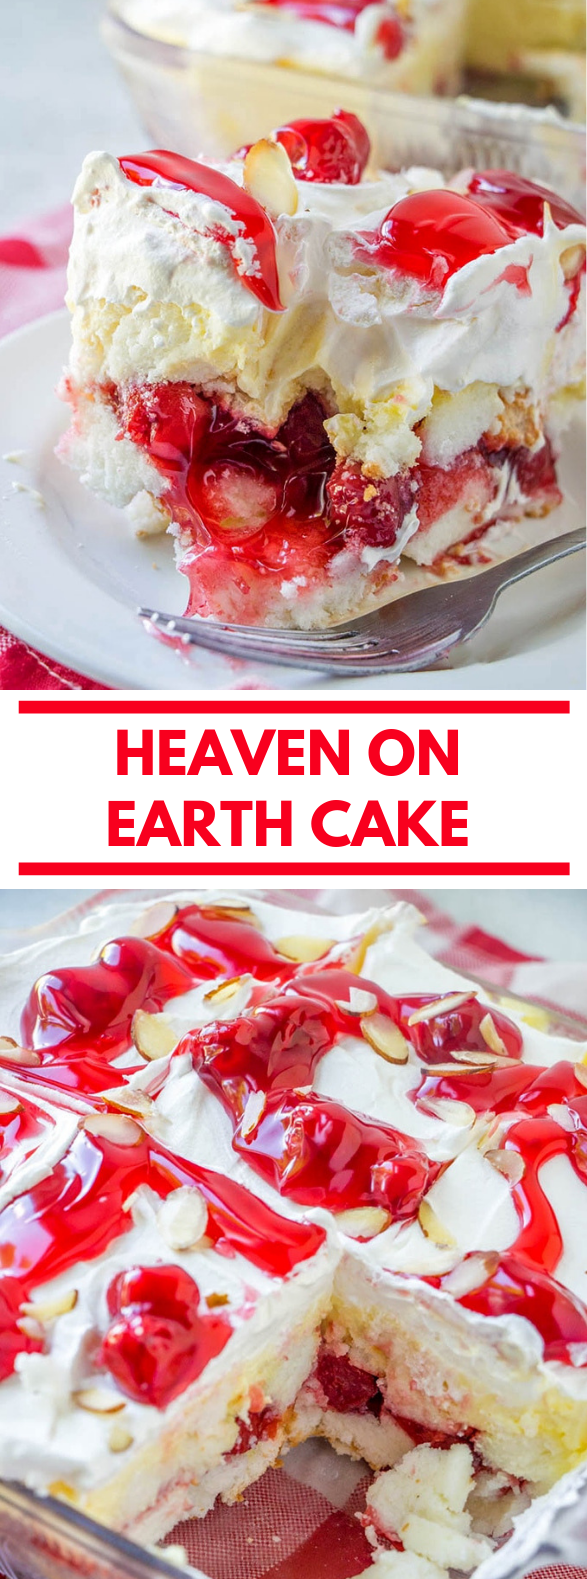 Heaven on Earth Cake #dessert #deliciouscake